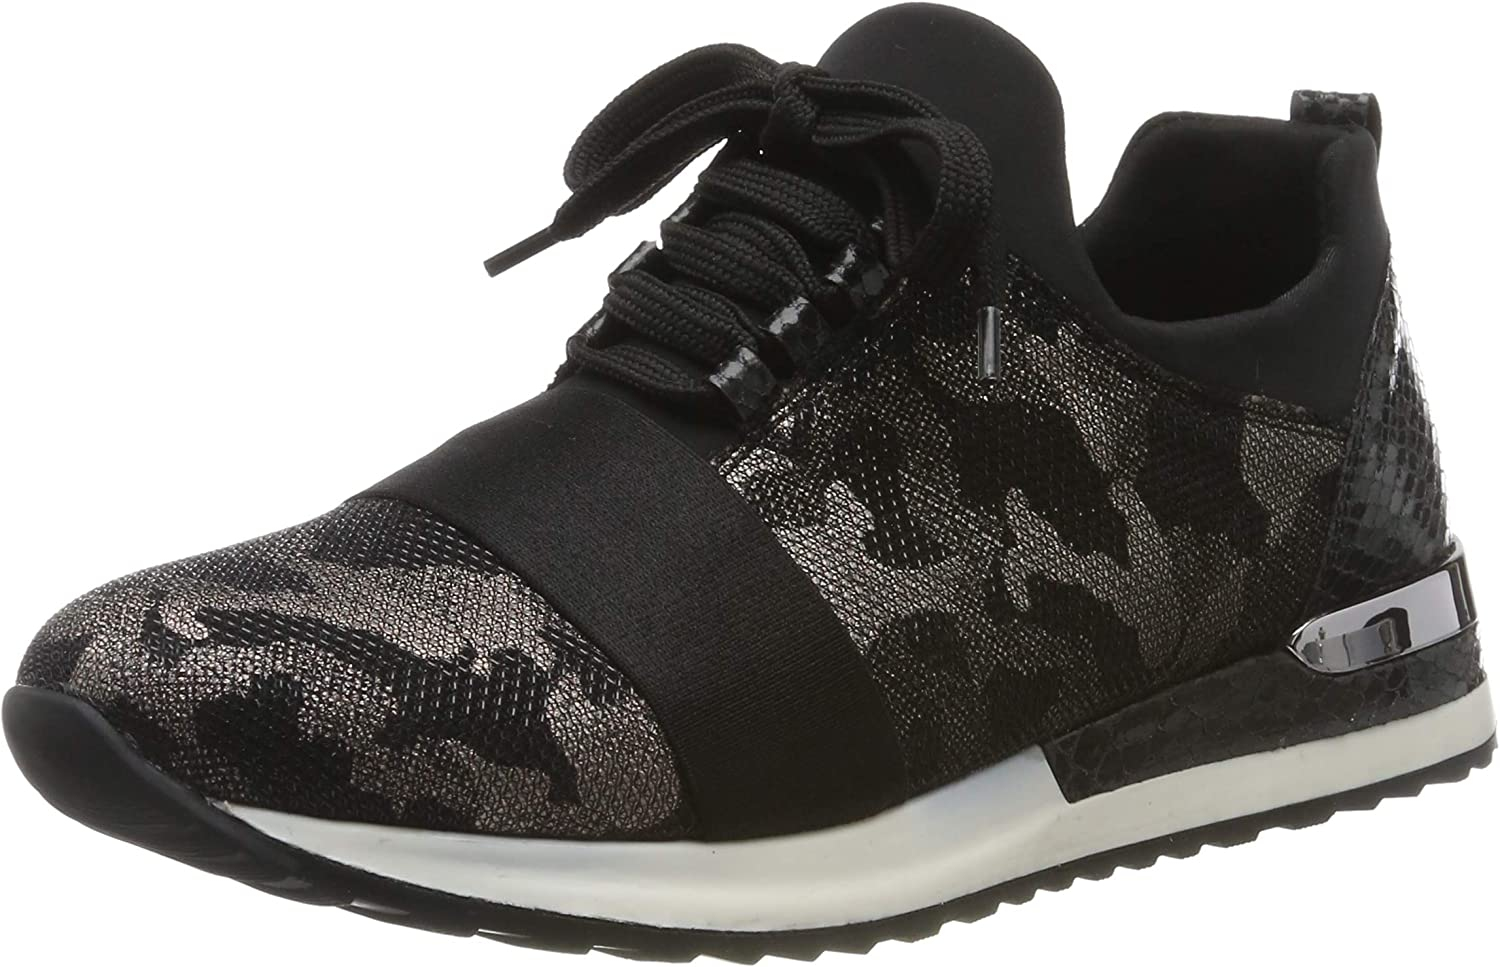 Remonte Womens Low-Top Sneakers